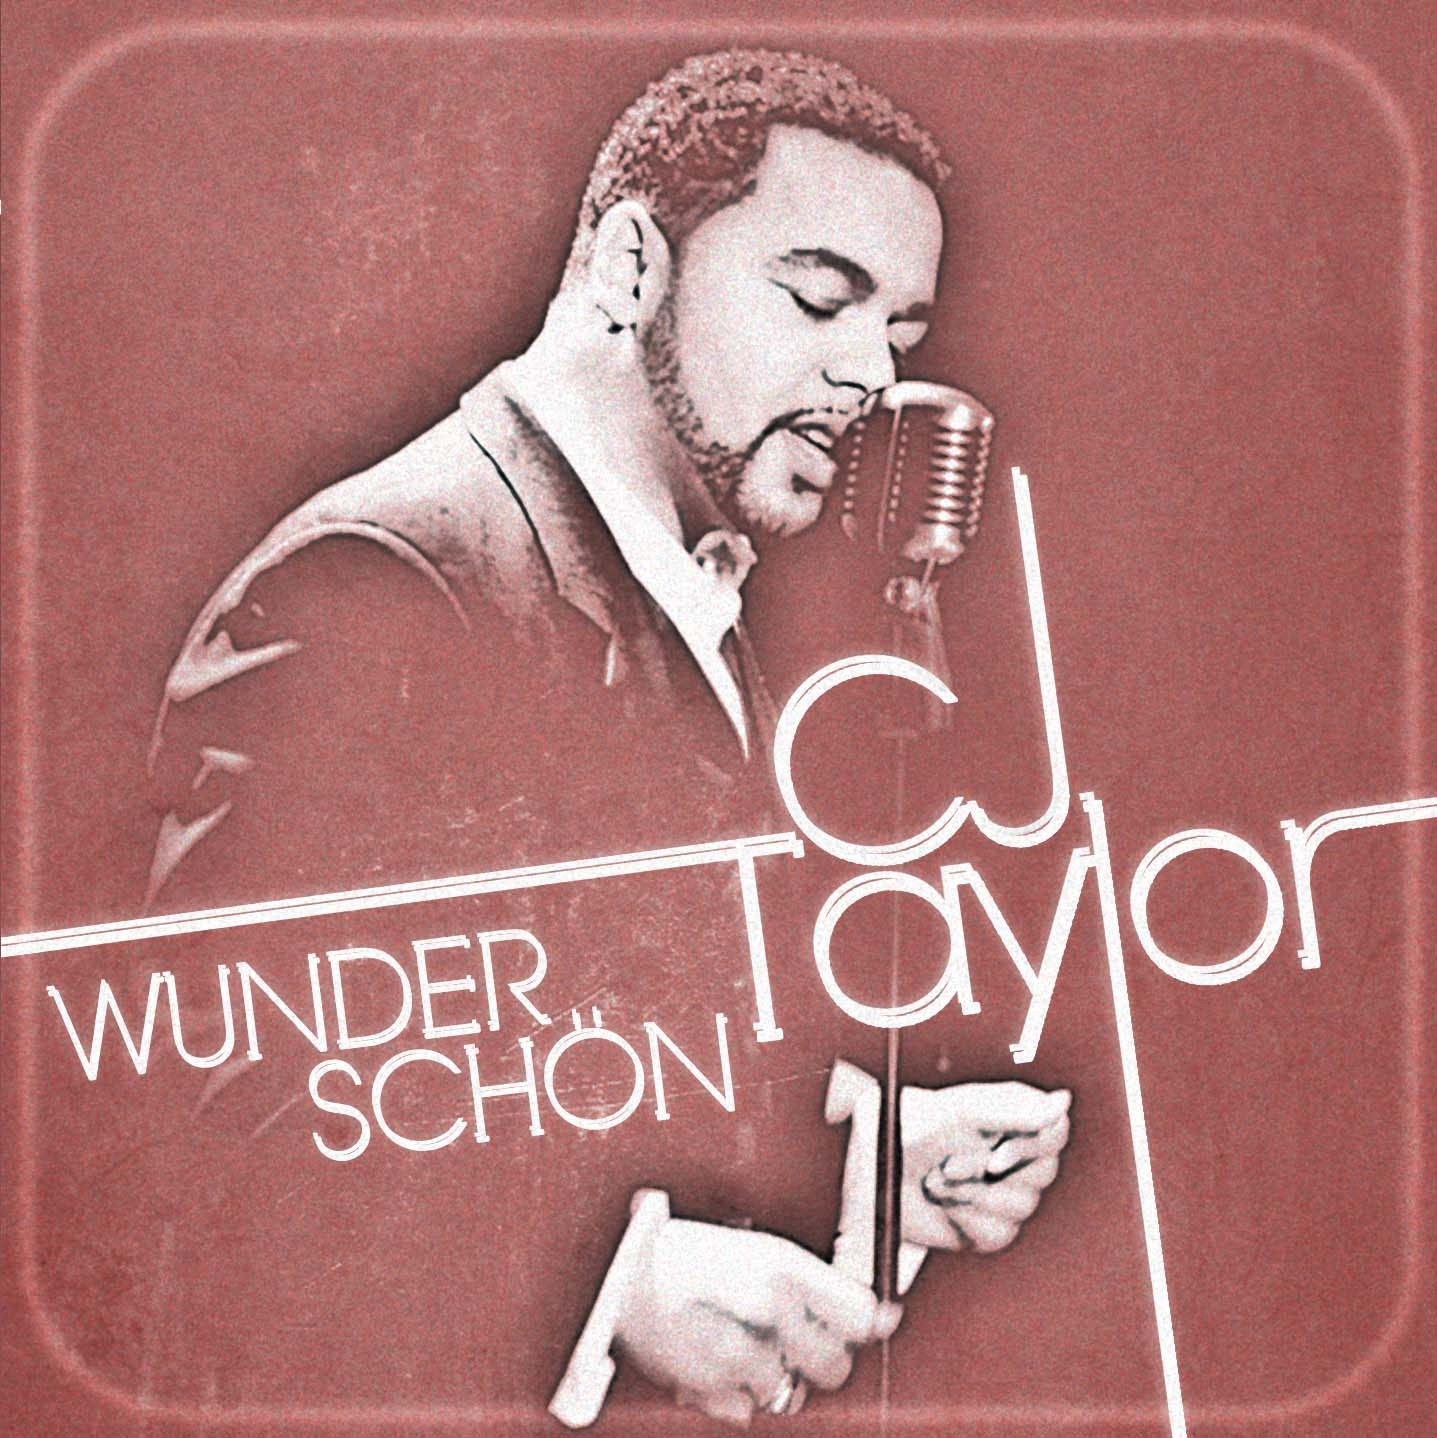 CJ Taylor, Interview, Cover